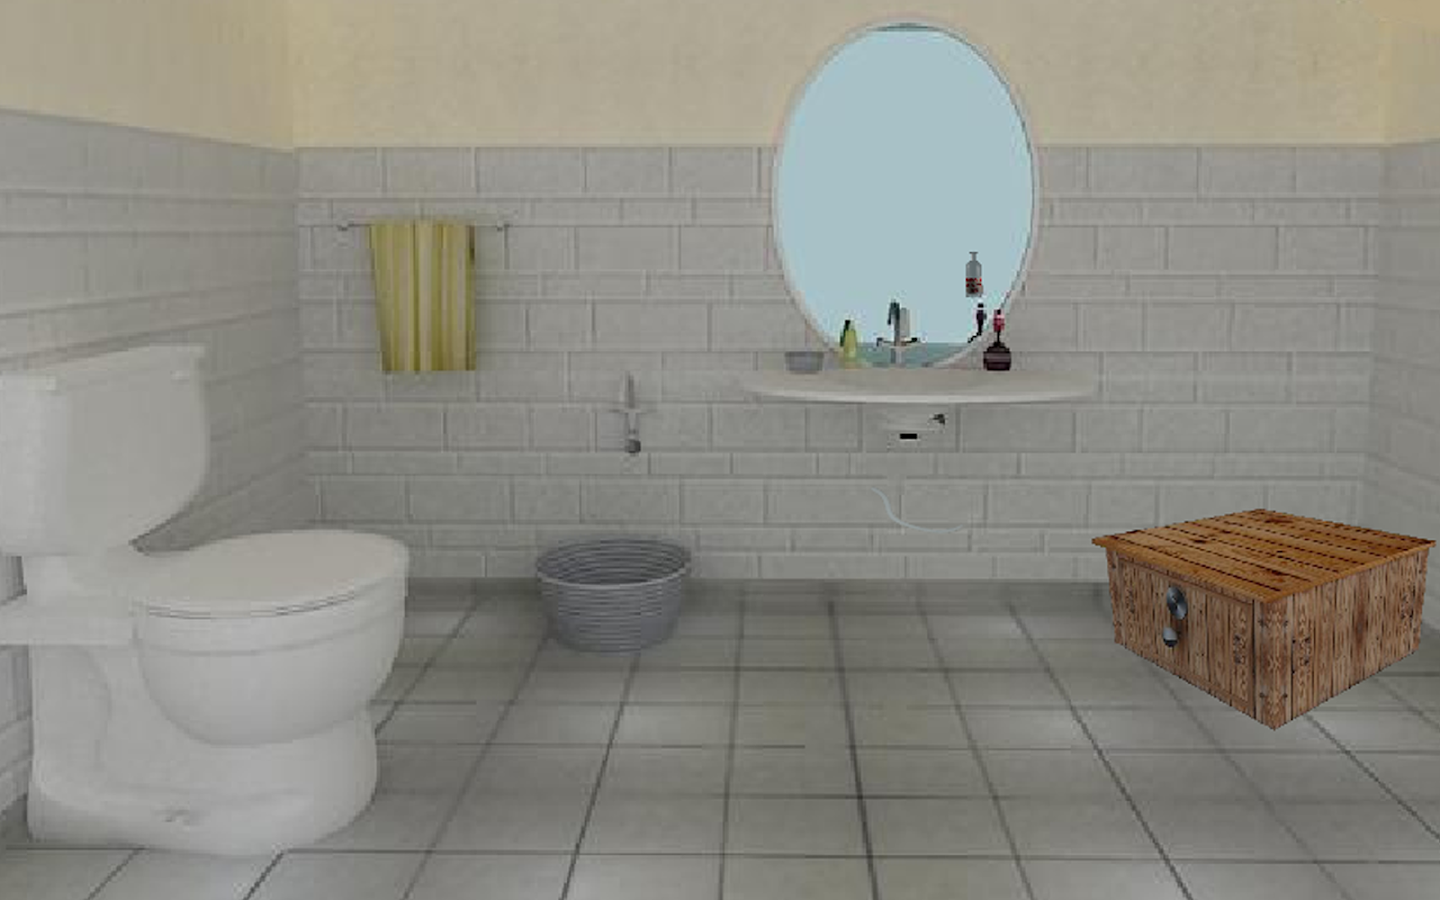 Escape Bathroom By Quick Sailor 3d escape games-puzzle kitchen - android apps on google play